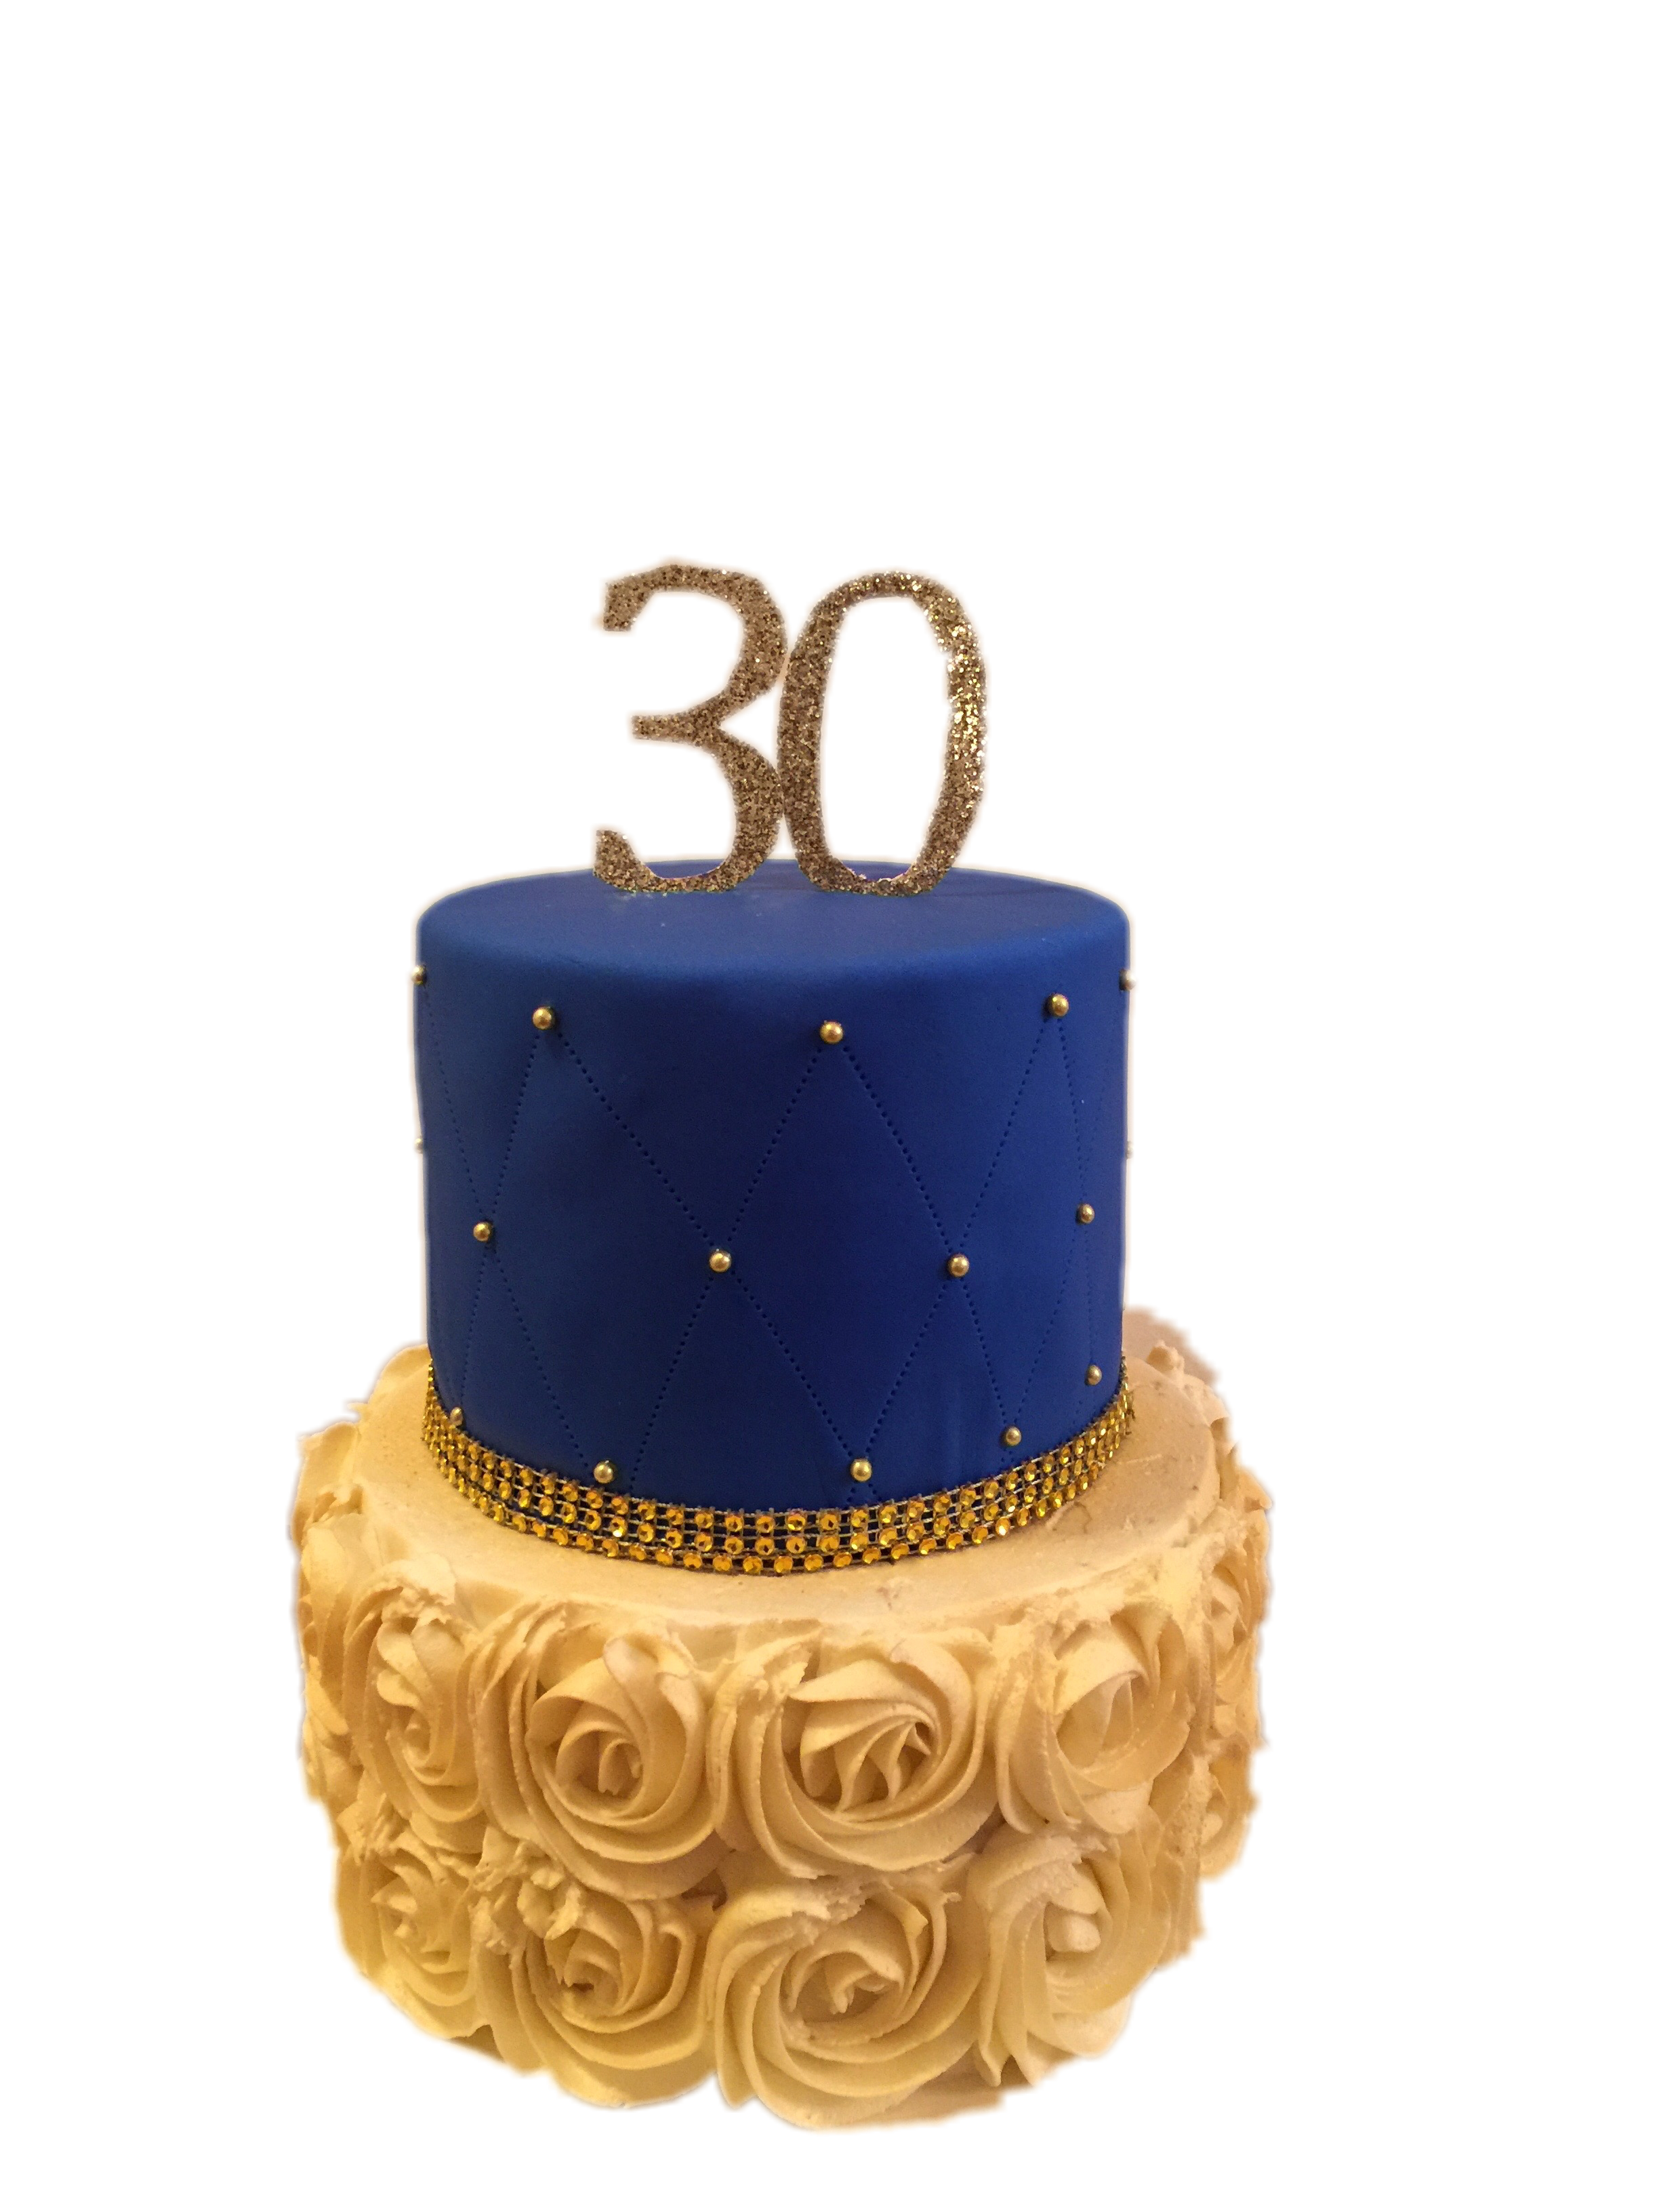 Quilted Gold & Royal blue cake